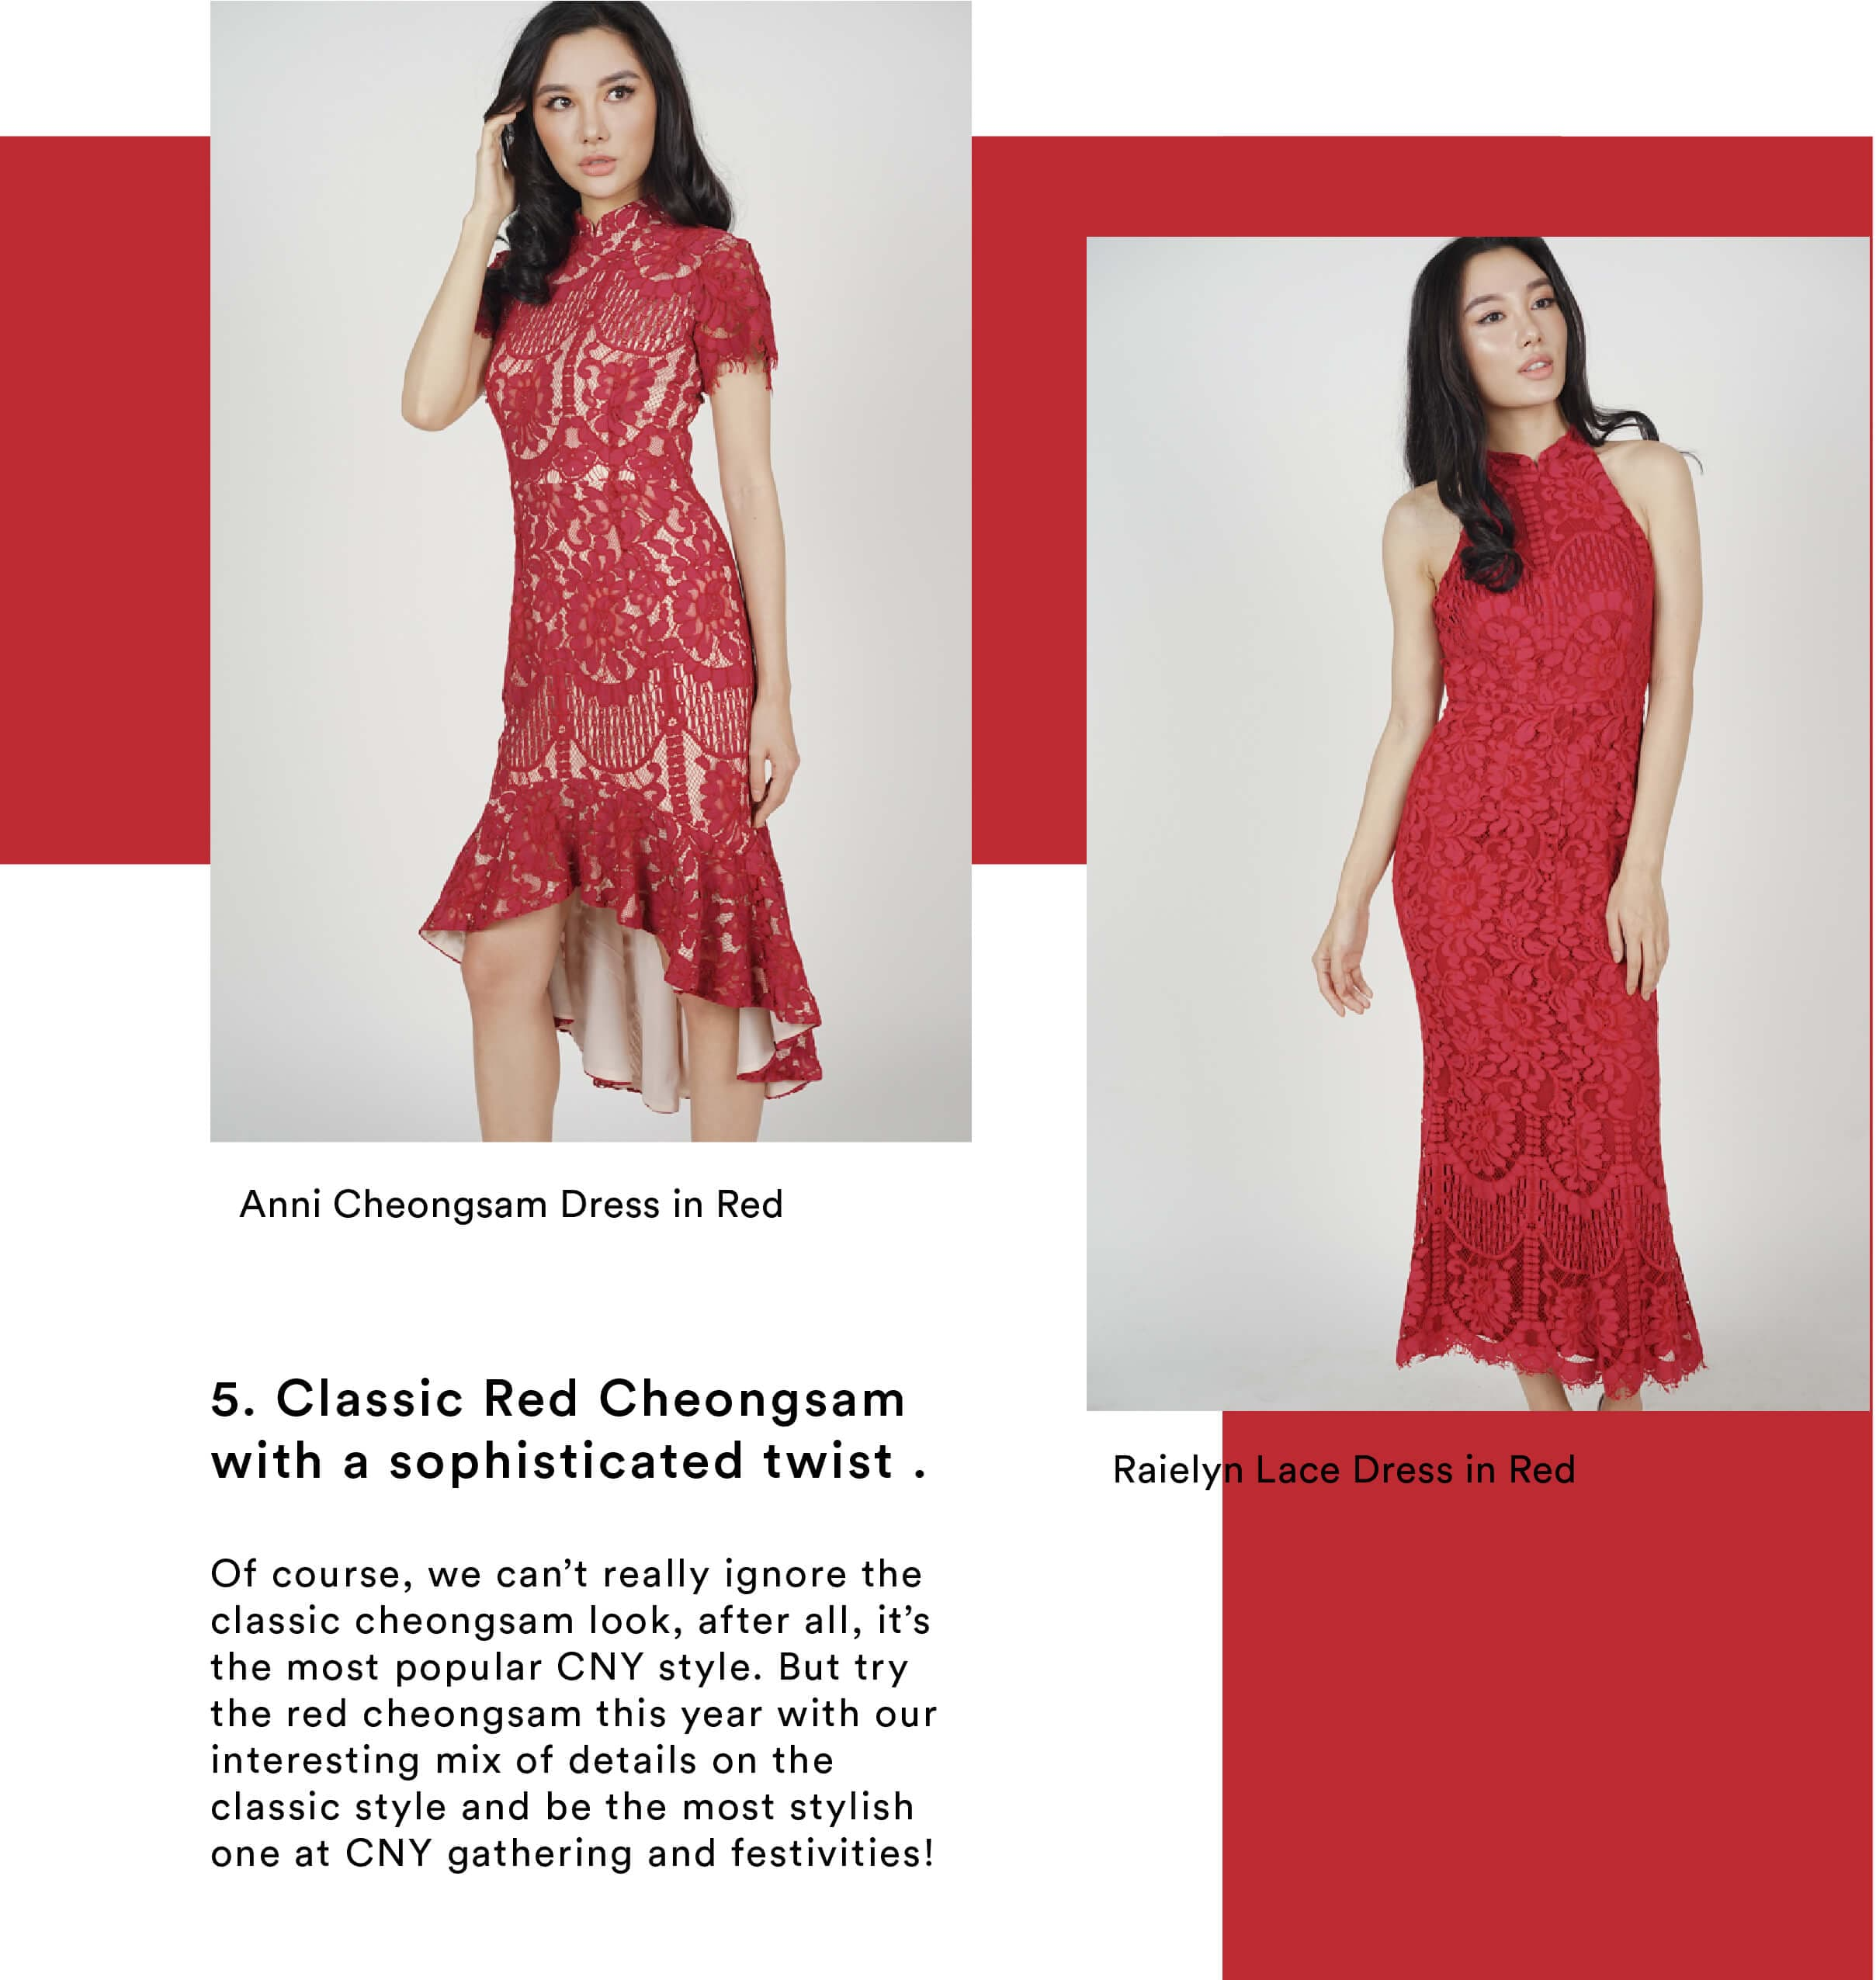 MDS Classic red cheongsam with a sophisticated twist